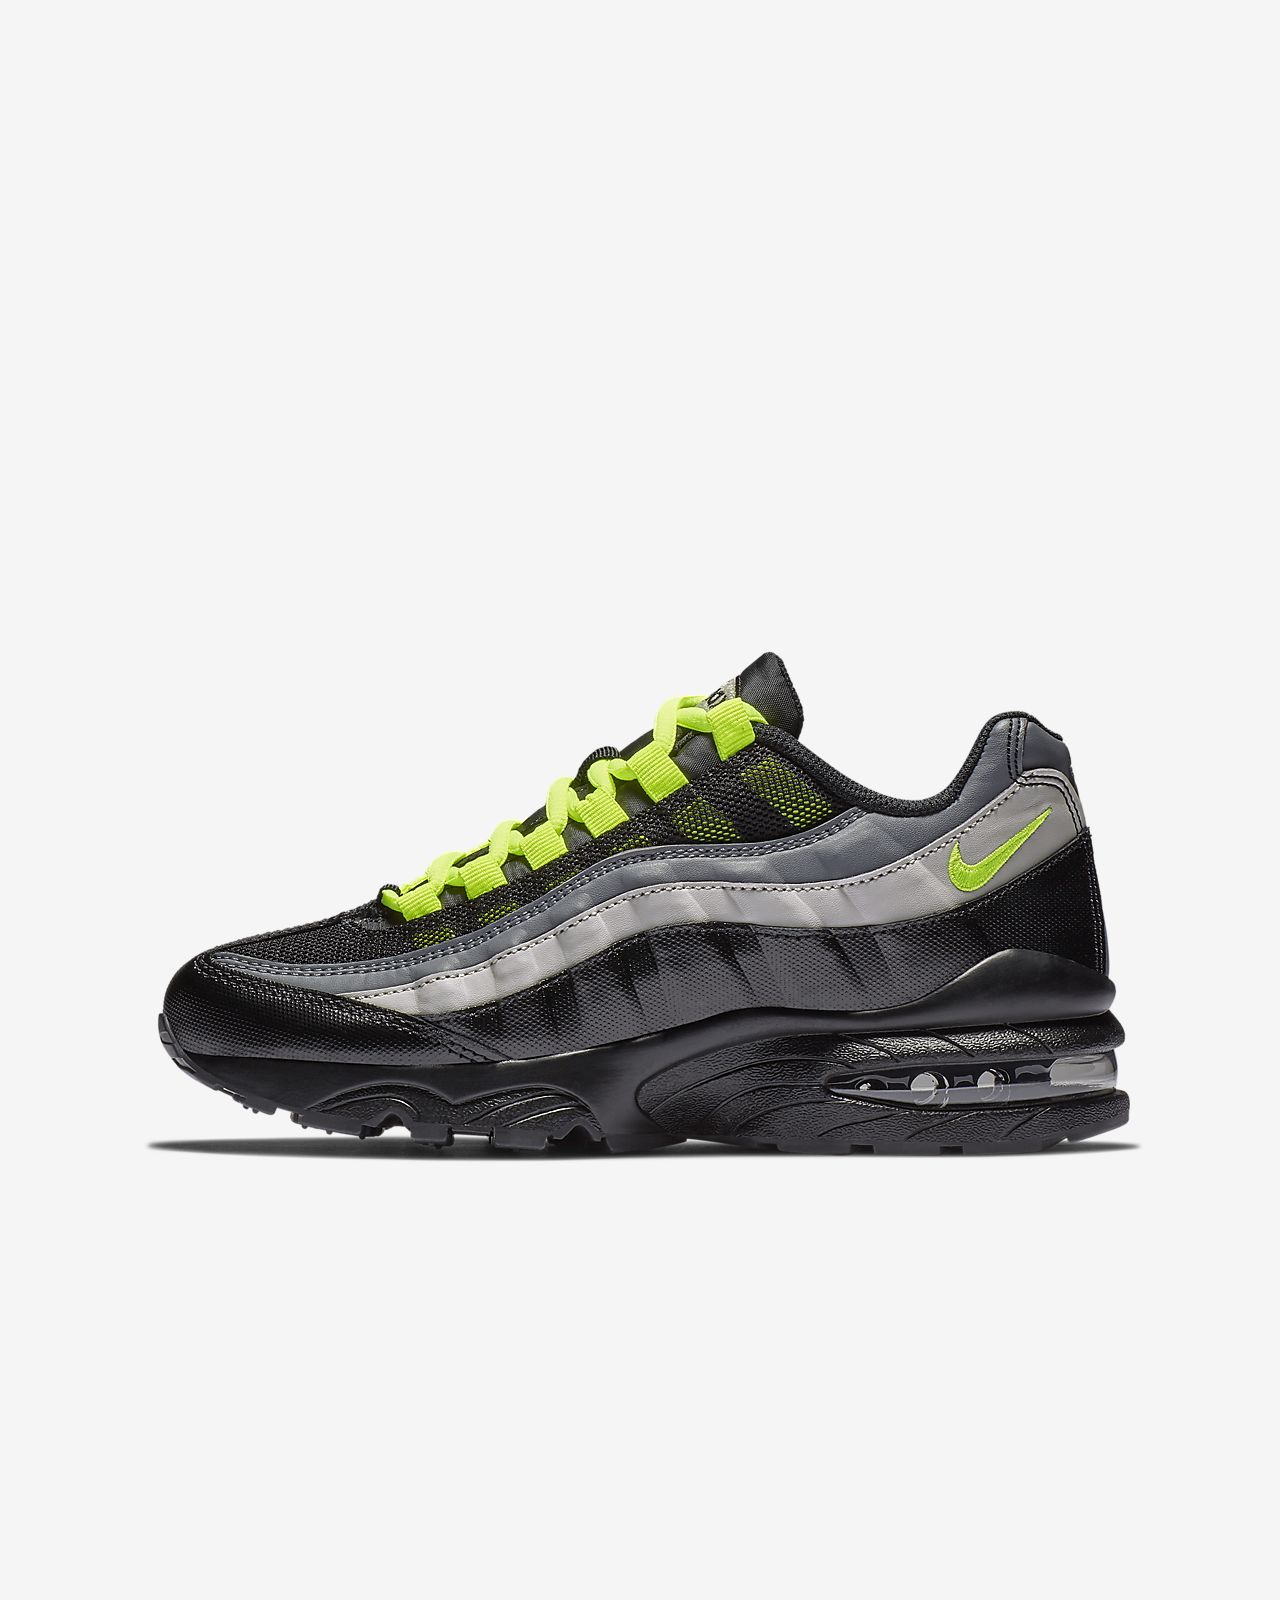 Air Max 95 : Plus d'options de personnalisation sur Nike iD